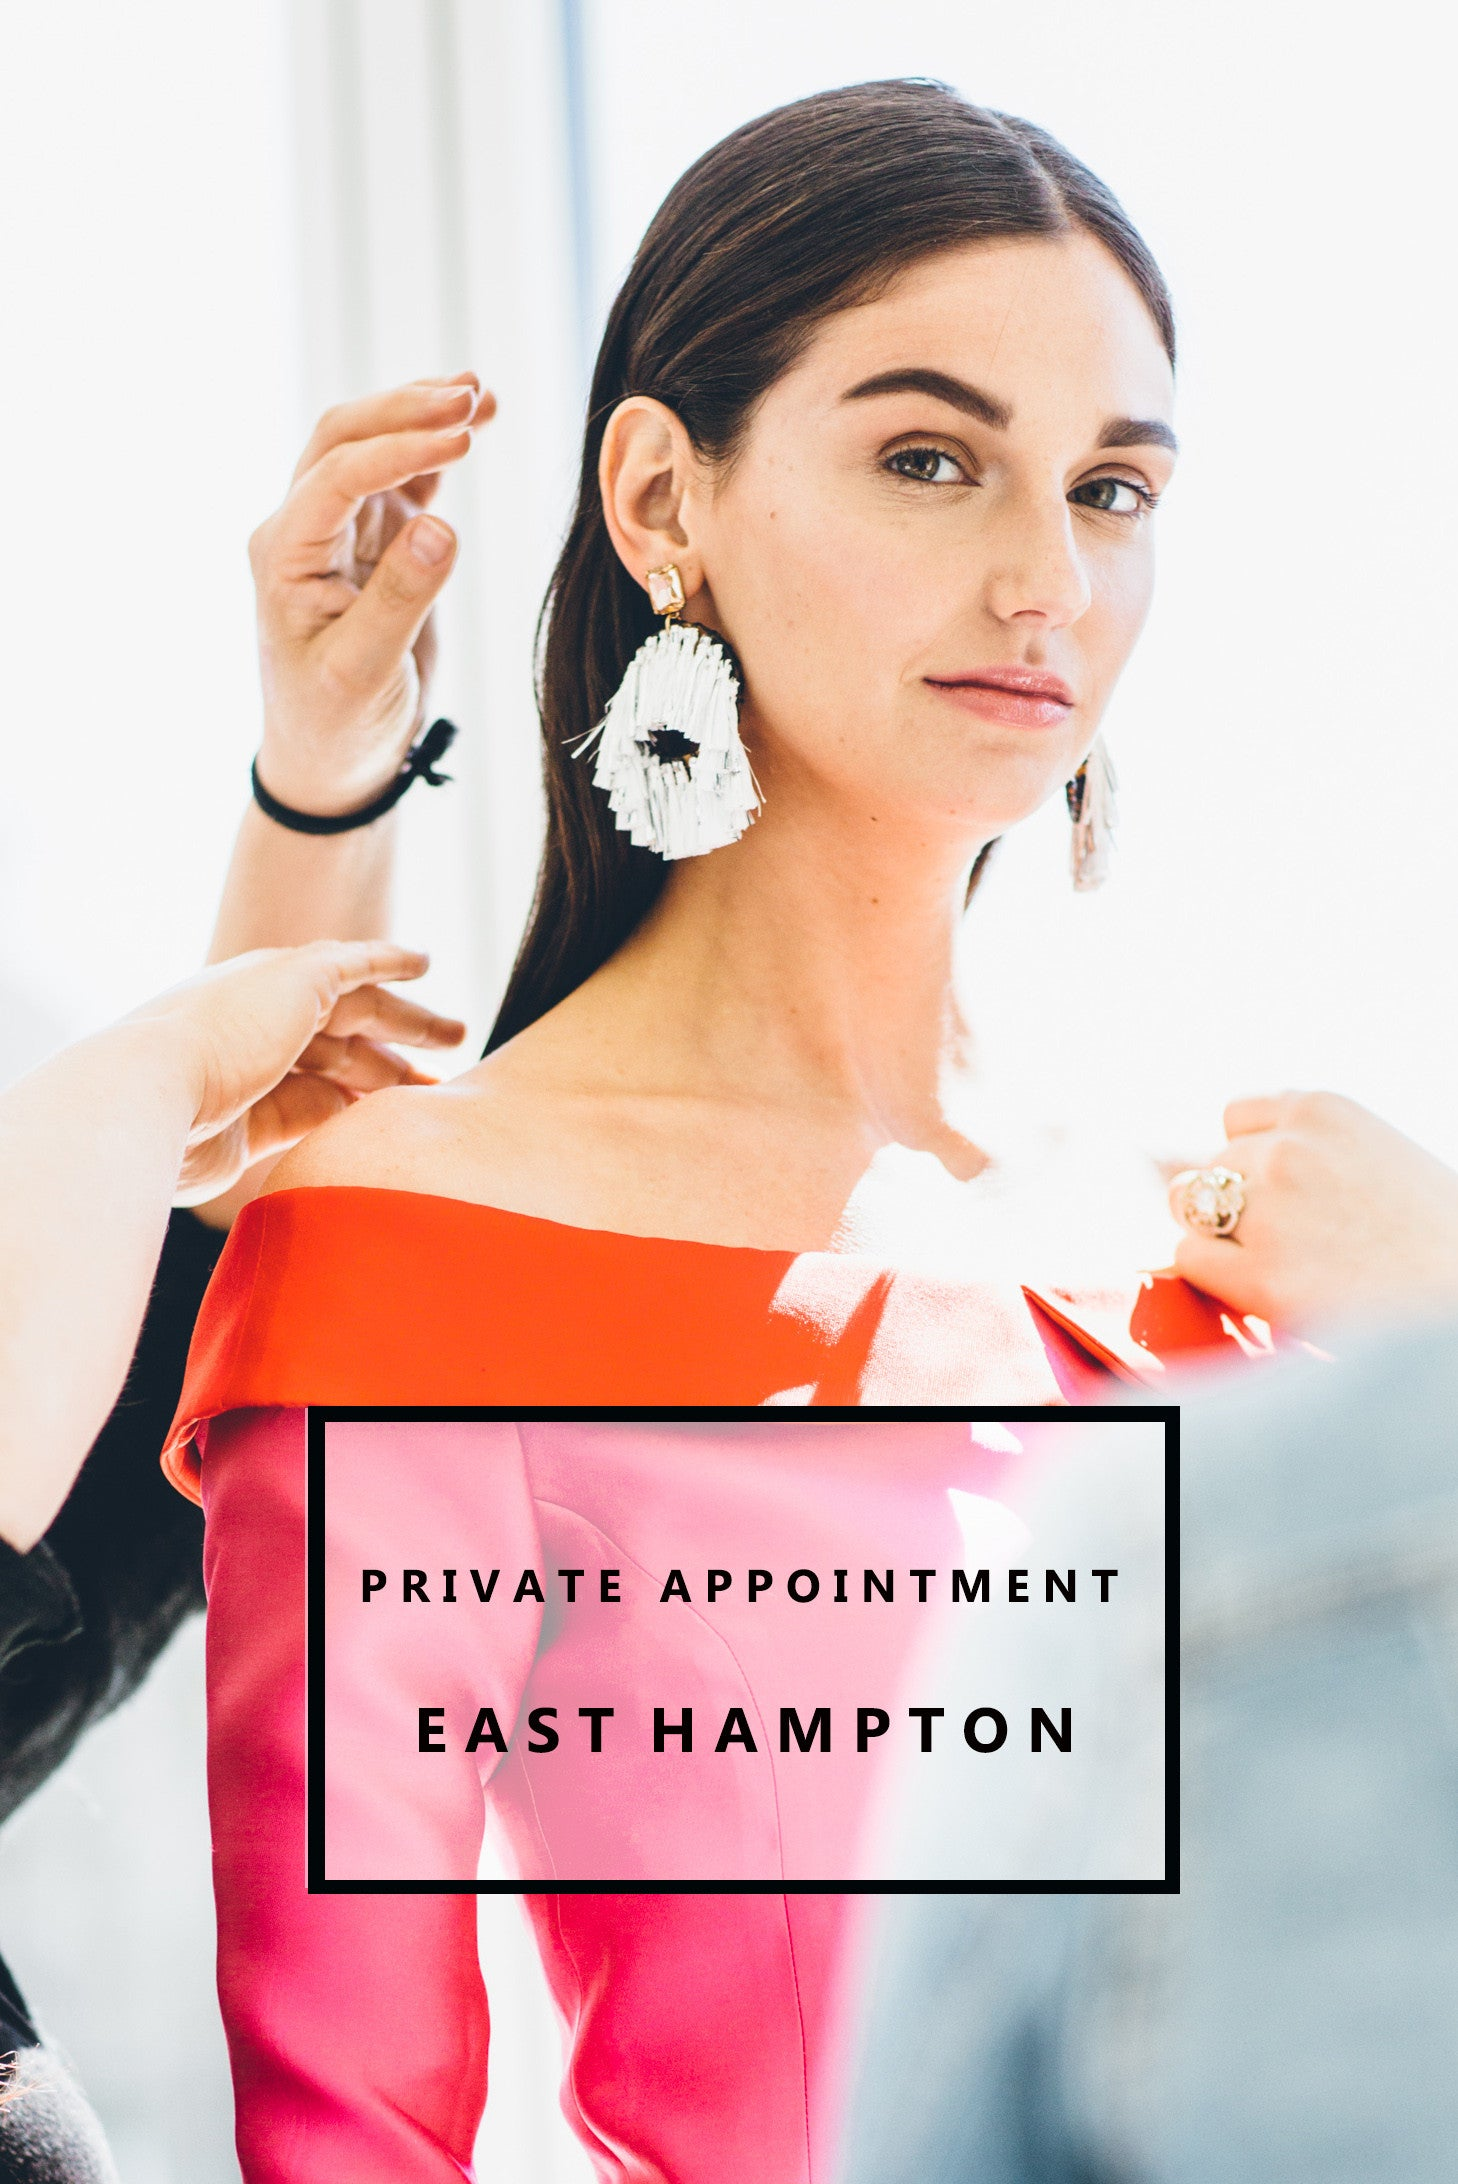 East Hampton Private Appointments